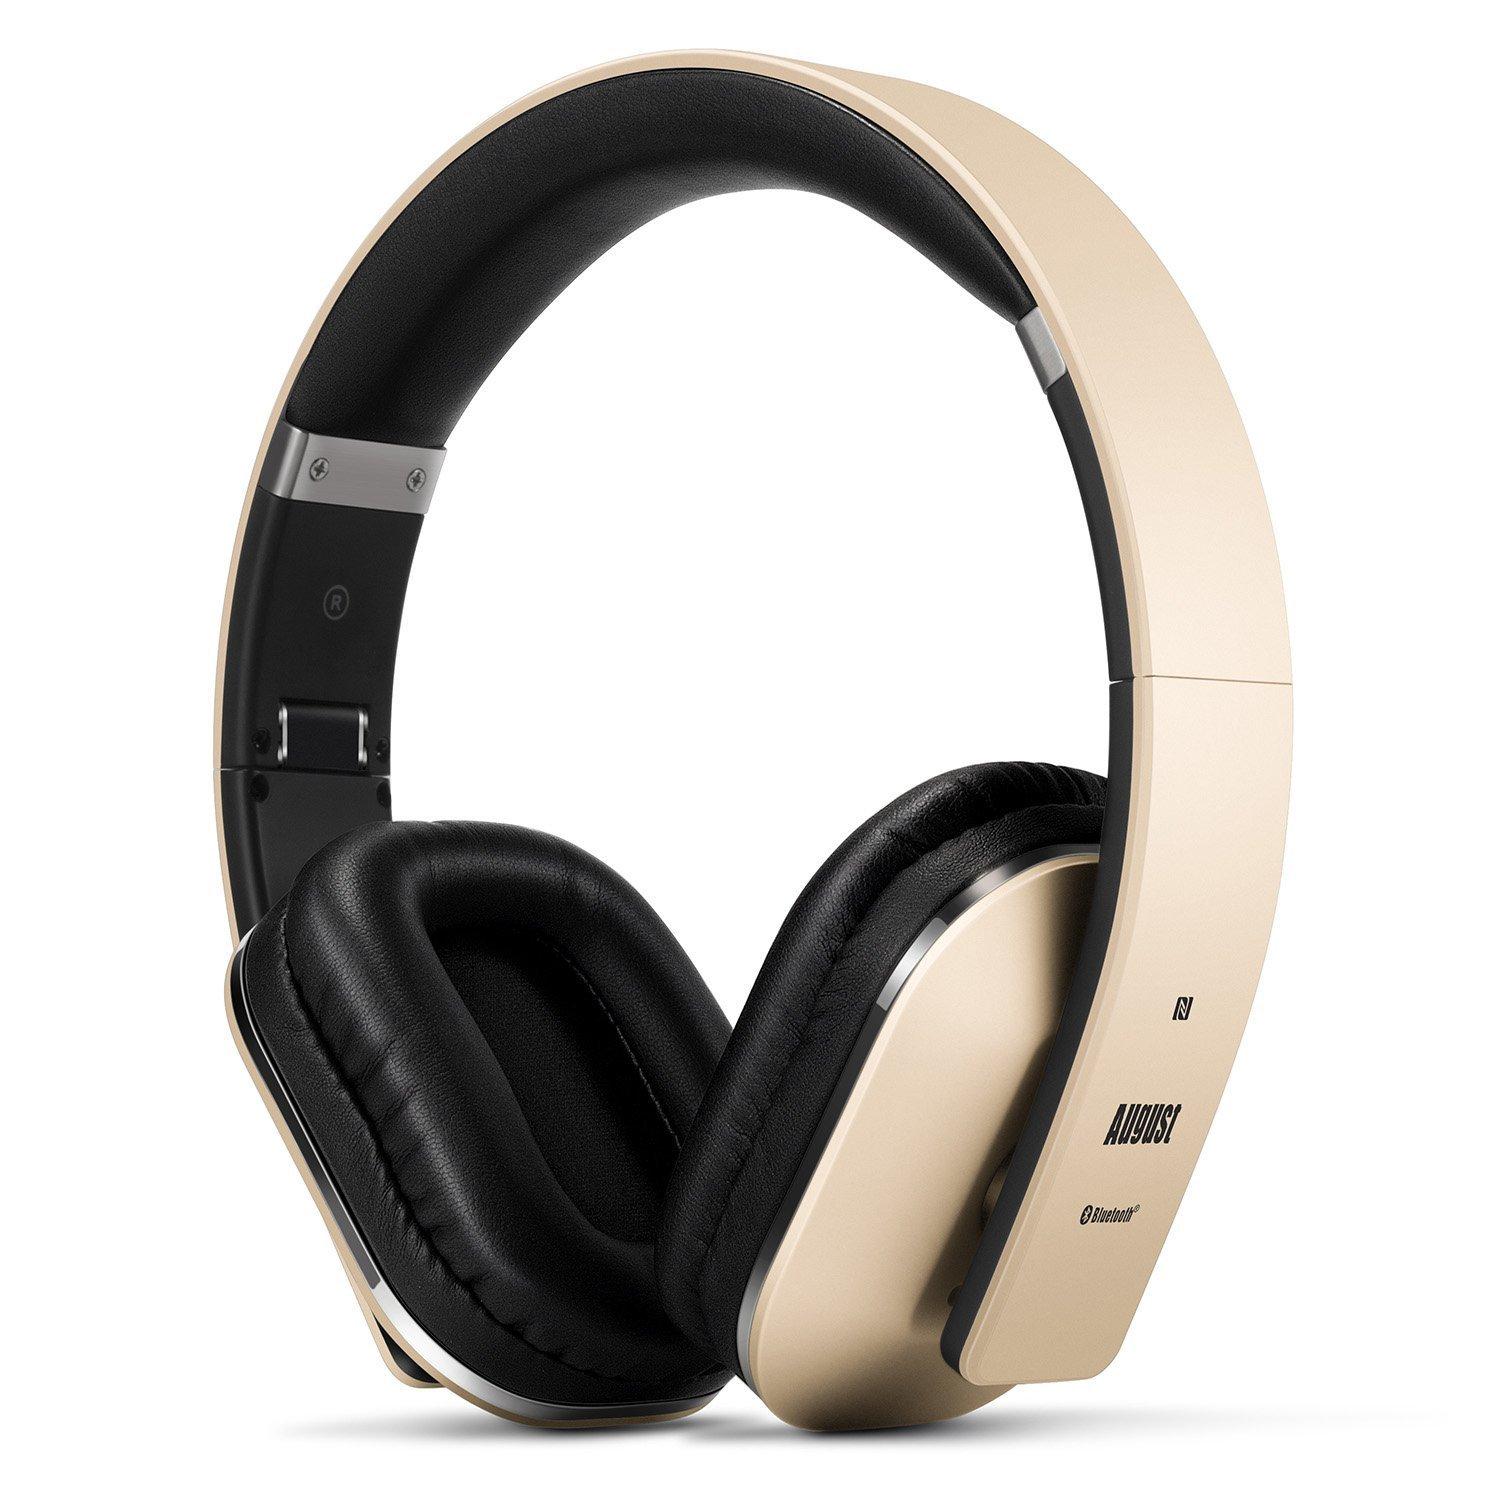 August EP650 – Auriculares Bluetooth NFC Inalámbricos con AptX, Color Dorado product image